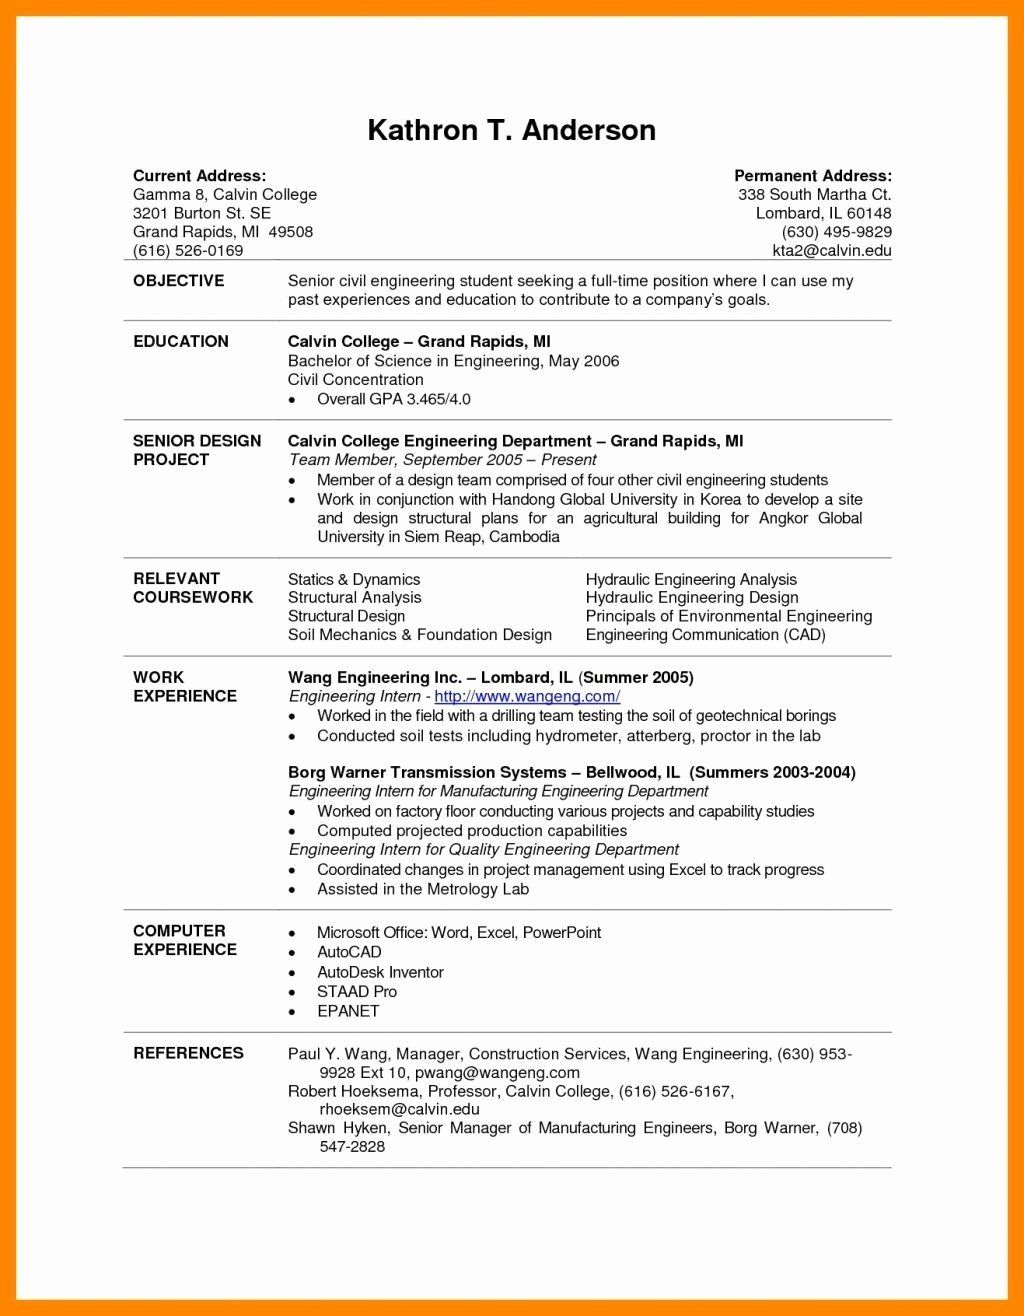 Capability Statement Template Doc Fresh 8 Example Sample Sma Gantt Chart Lesson Plan Templates Personal Capacity